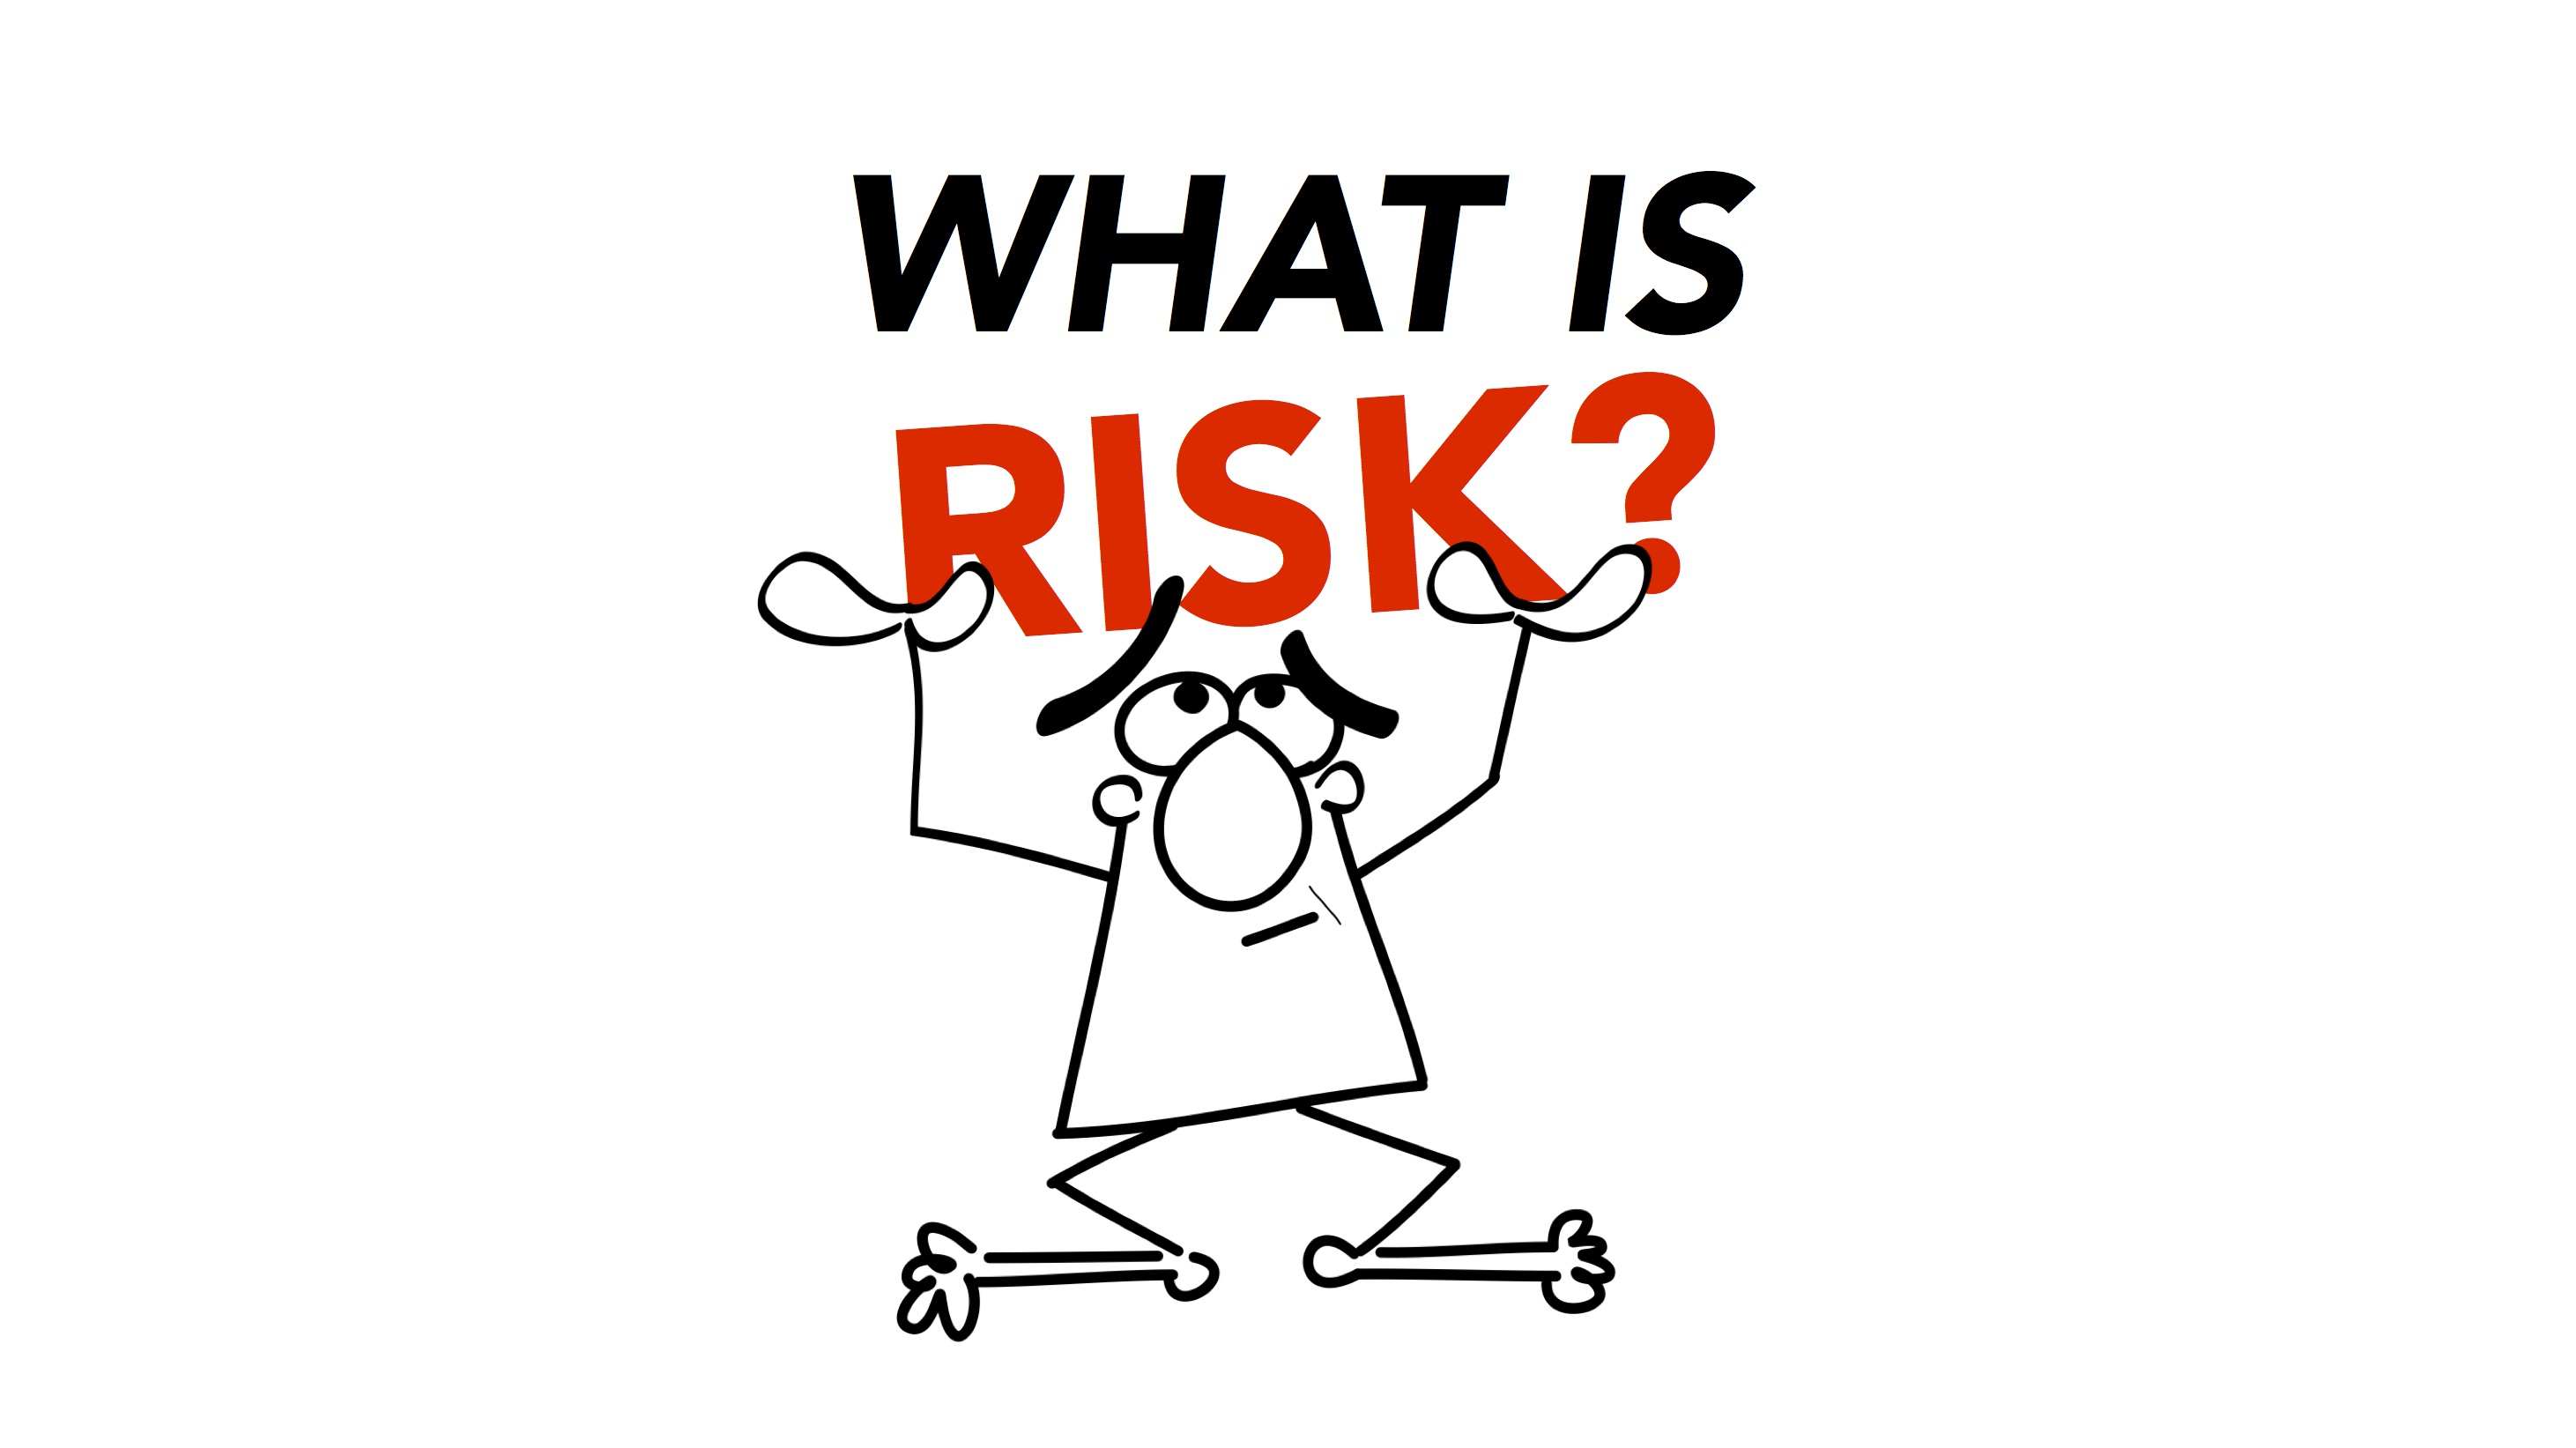 A video on risk